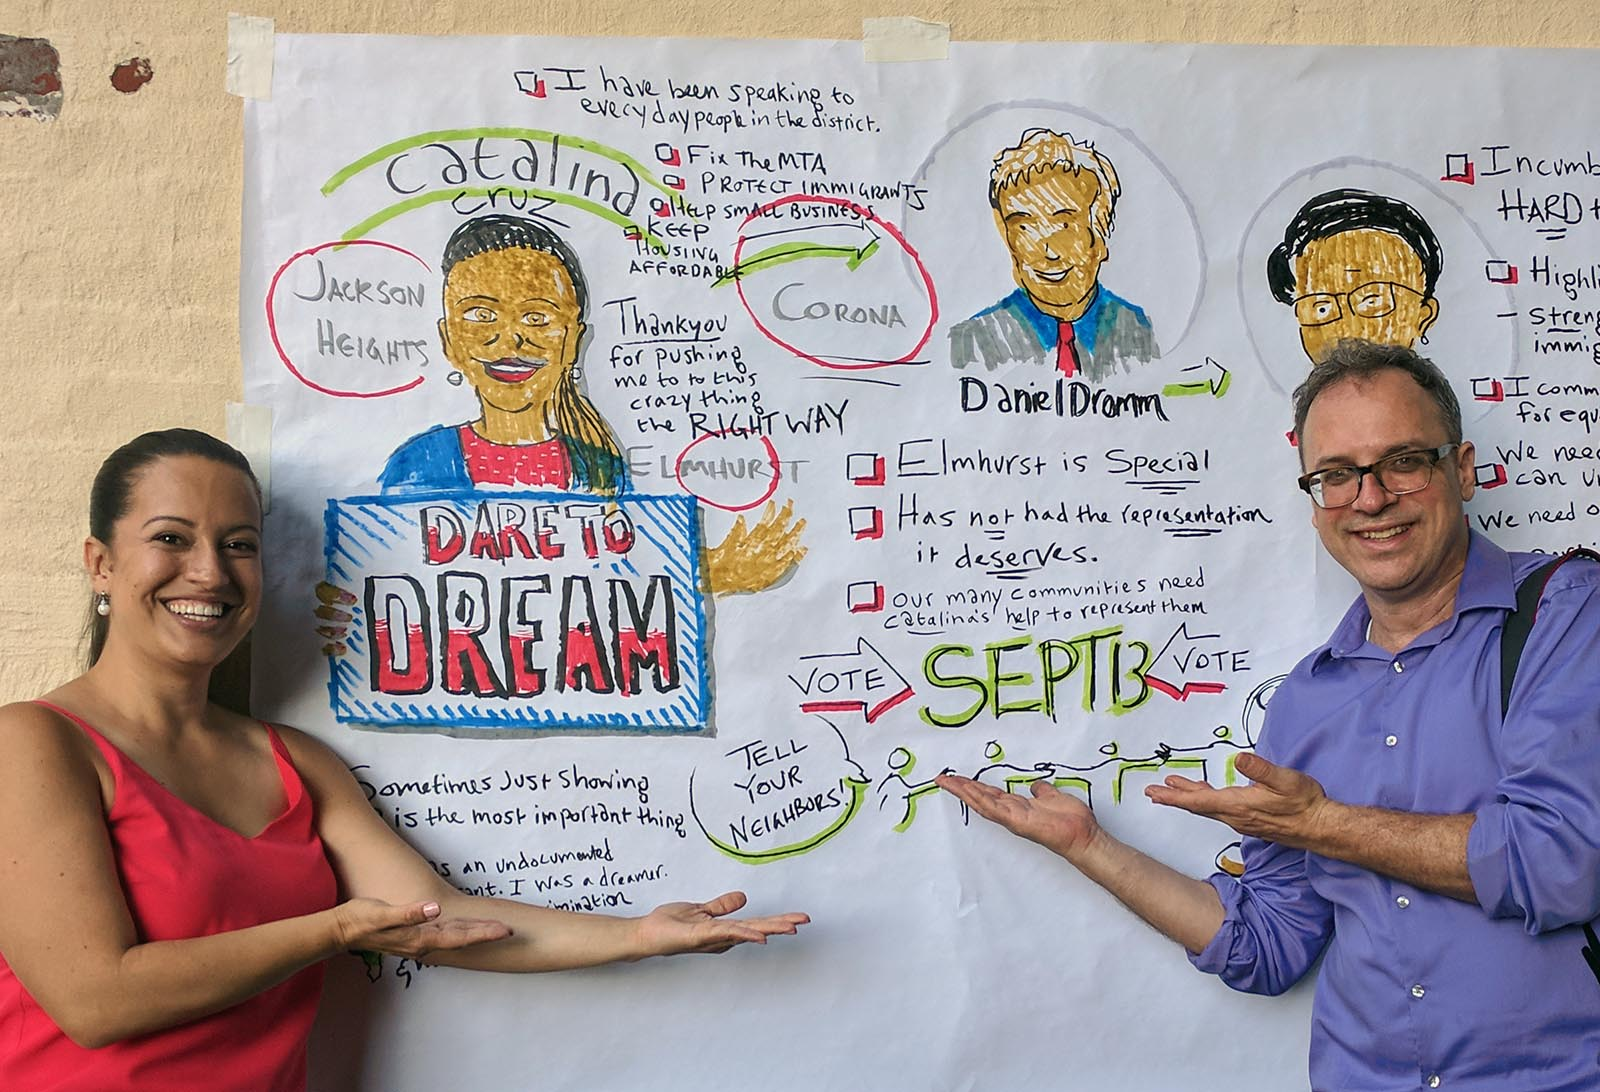 This piece was for candidate Catalina Cruz, who was subsequently elected to the state assembly as the first former Dreamer elected to that office in New York. I captured remarks by Cruz as well as city council members Danny Dromm and Margaret Chin. assembly member Cruz pictured at left. Art materials: markers and paper.